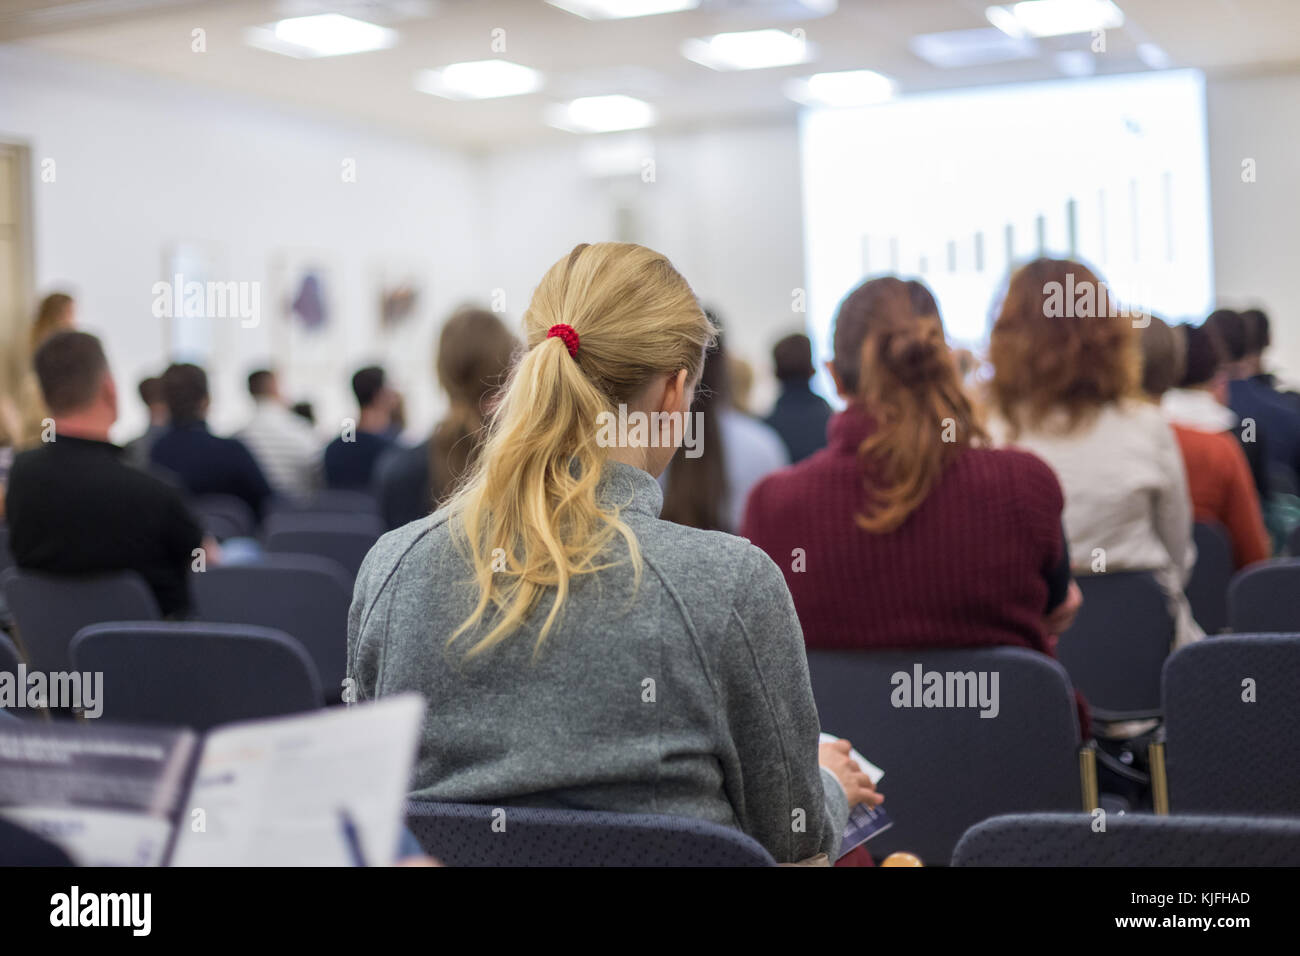 Workshop at university lecture hall. - Stock Image